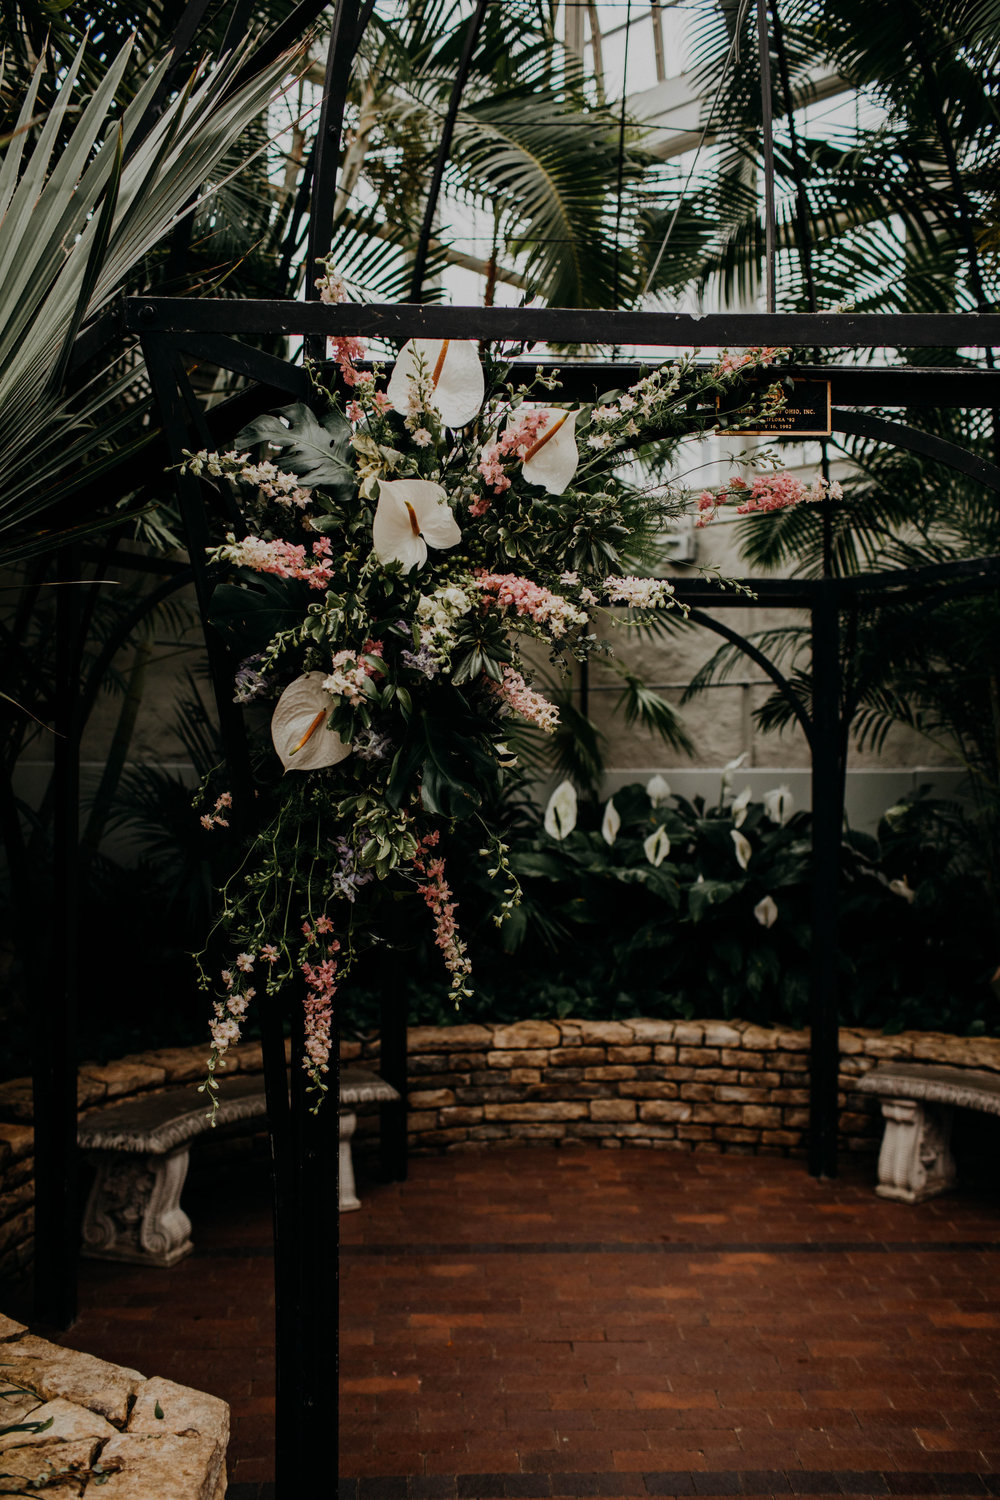 franklin park conservatory wedding columbus ohio wedding photographer grace e jones photography26.jpg